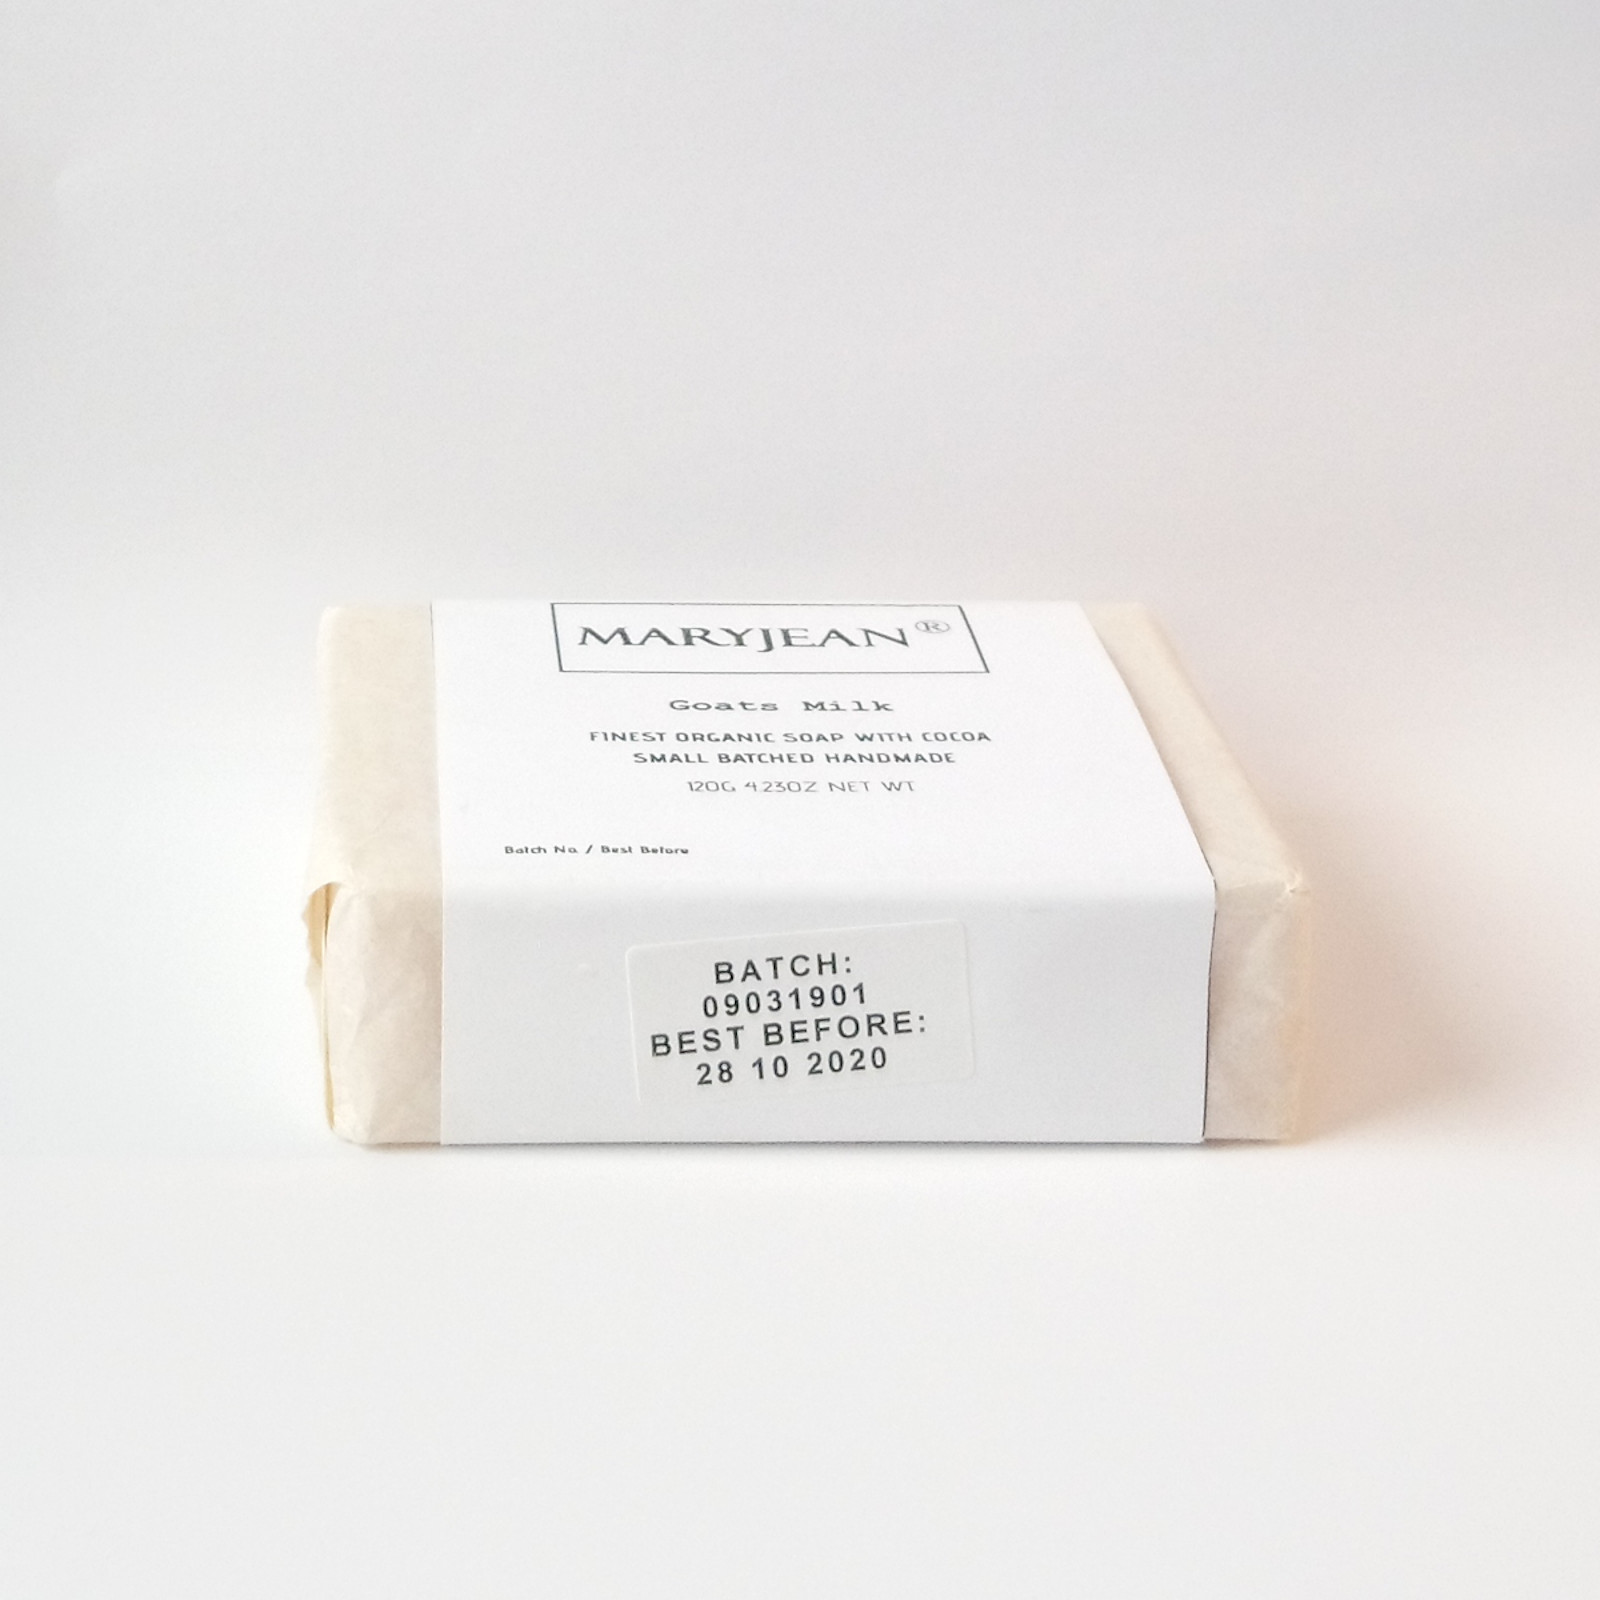 We recommend for every type of skin and condition use of this soap from daily use suitable for all ages, for hand and body and facial cleansing too